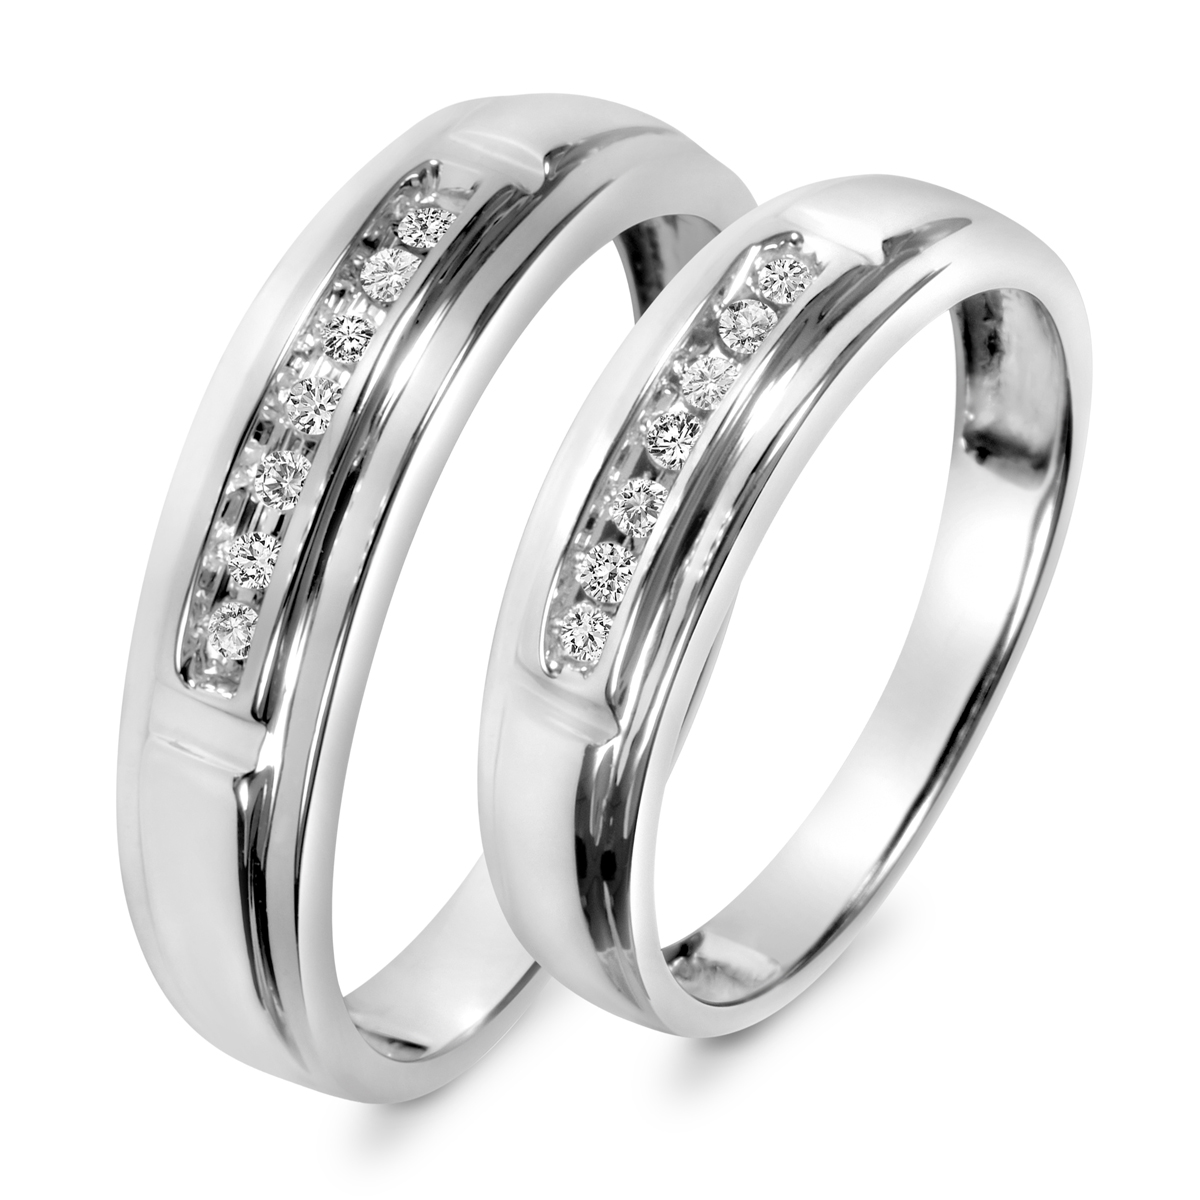 18 Carat TW Diamond His And Hers Wedding Band Set 10K White Gold